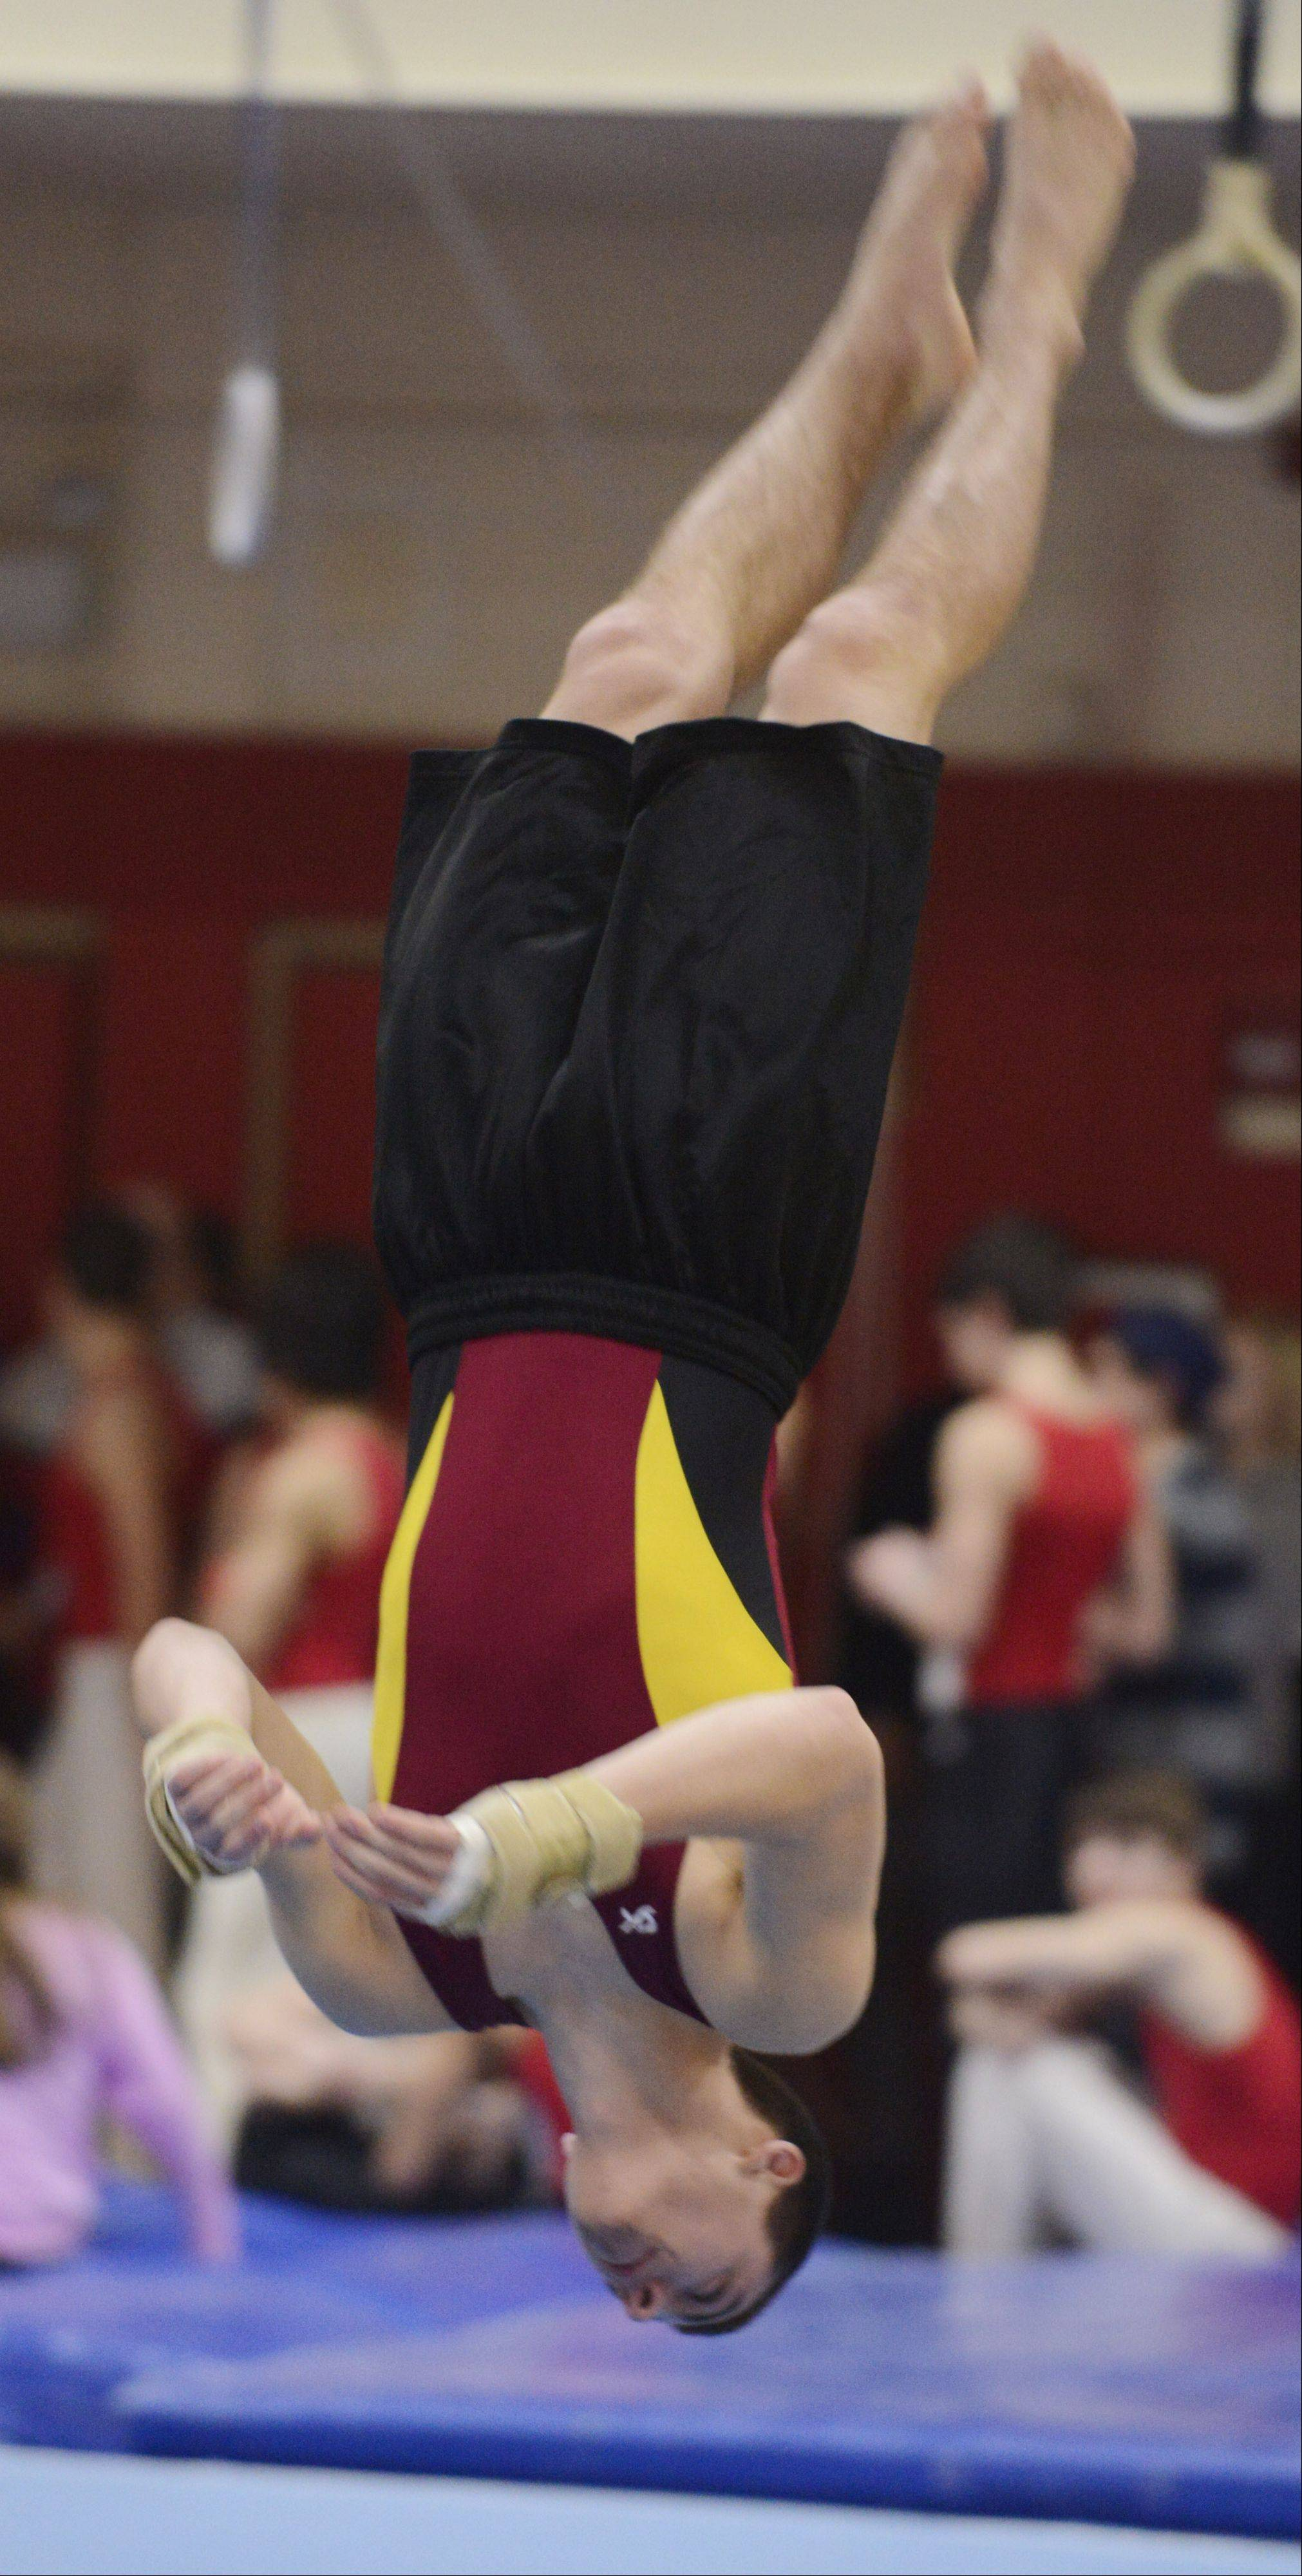 Schaumburg's Mat Sigler competes on the floor exercise during Wednesday's boys gymnastics triangular meet at Schaumburg.